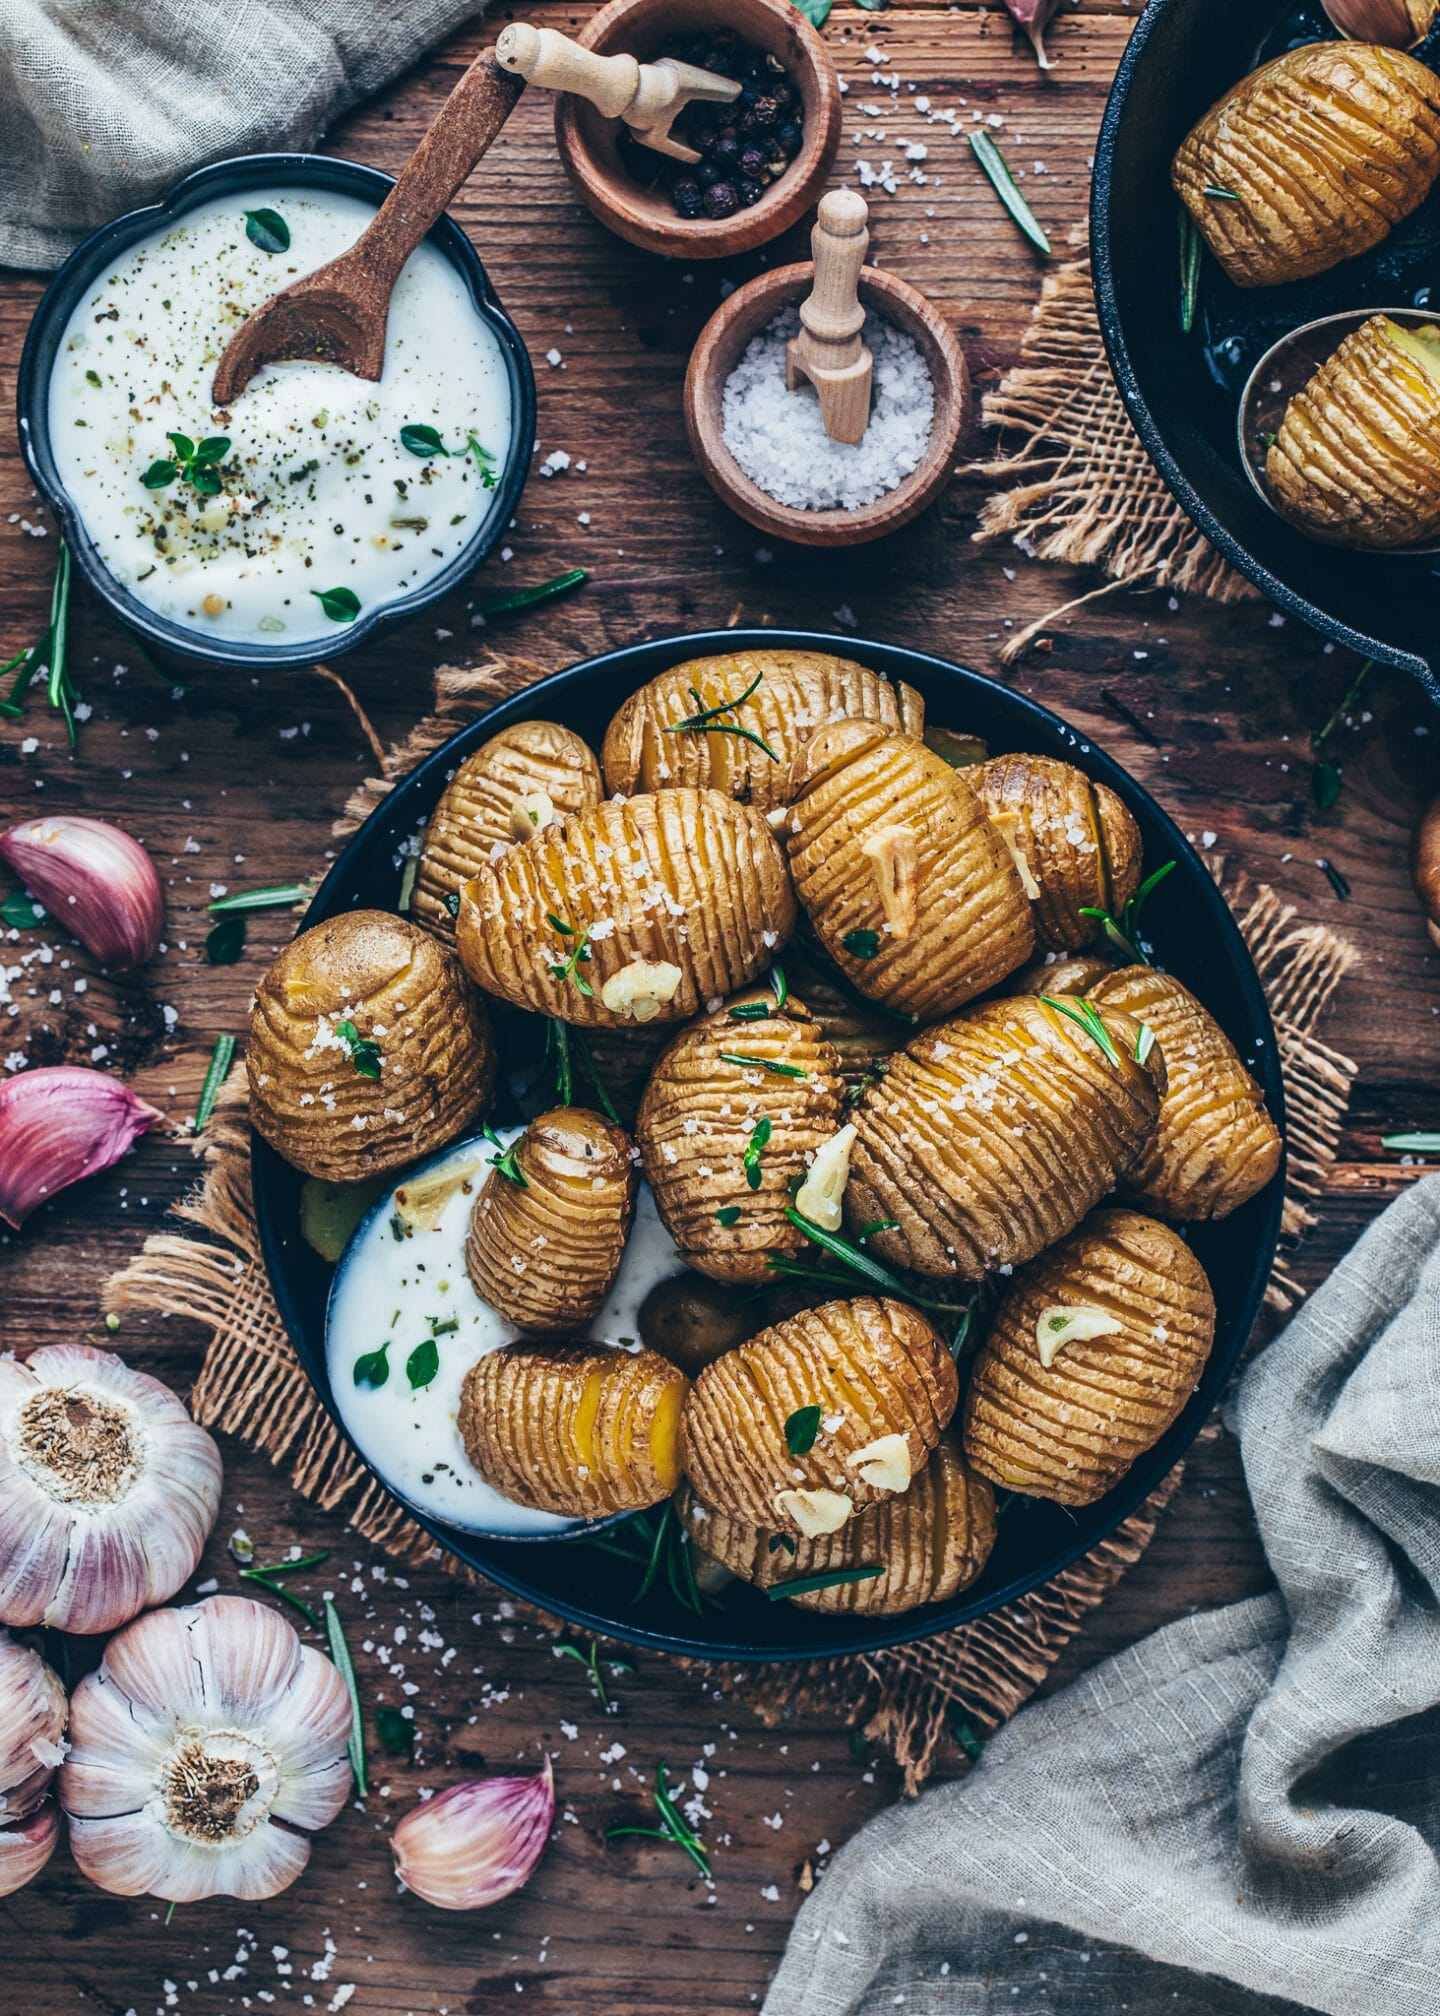 Crispy baked Hasselback Potatoes with garlic, rosemary, sea salt and sour cream dip